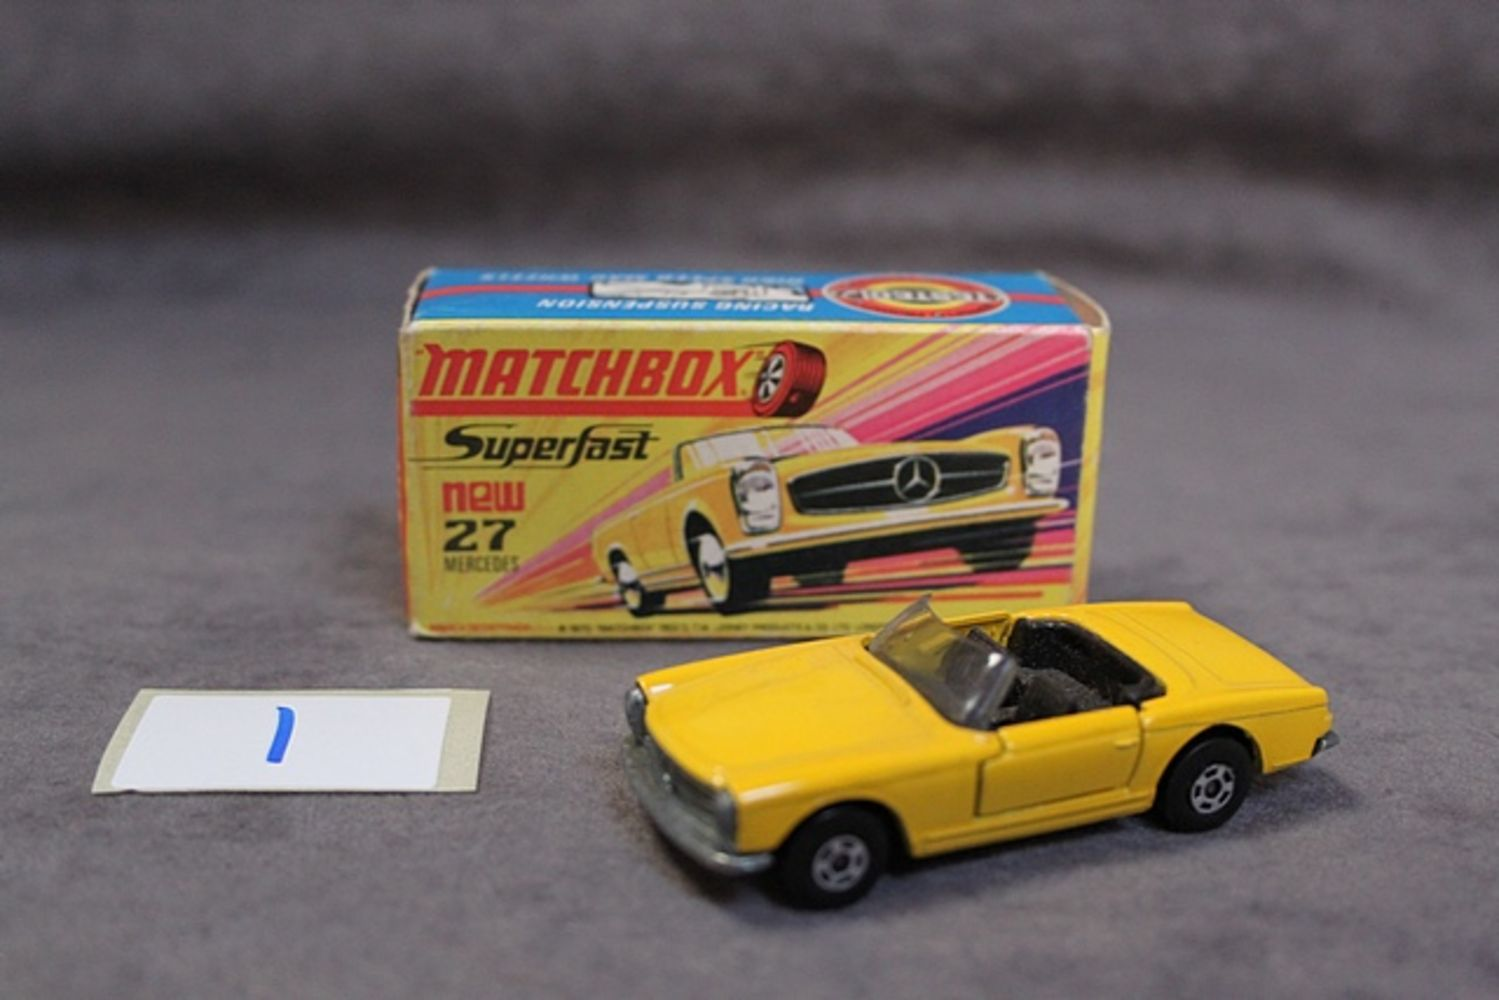 Vintage Toy Auction A Curated Collection From A Single User Over The Past 50 Years – Comprises Diecast, Corgi, Dinky, Soft Toys, Vintage Toys